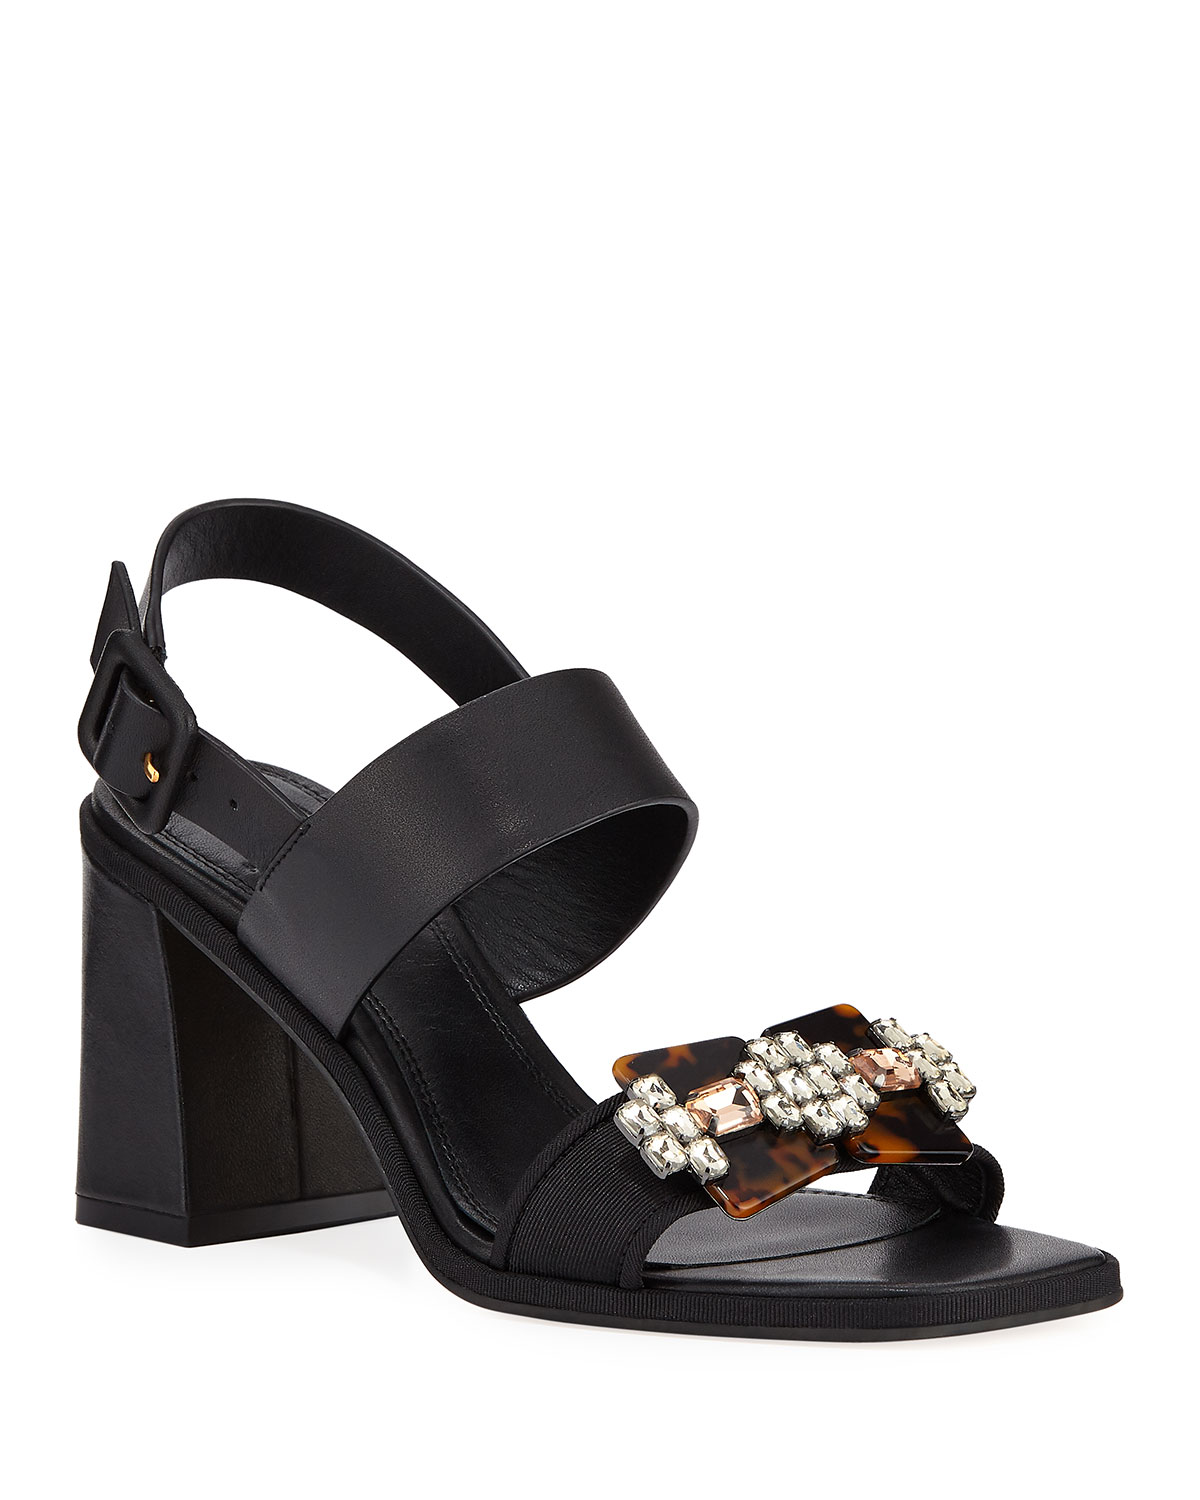 a04de67280a Tory Burch Delaney Embellished Leather Sandal   Neiman Marcus